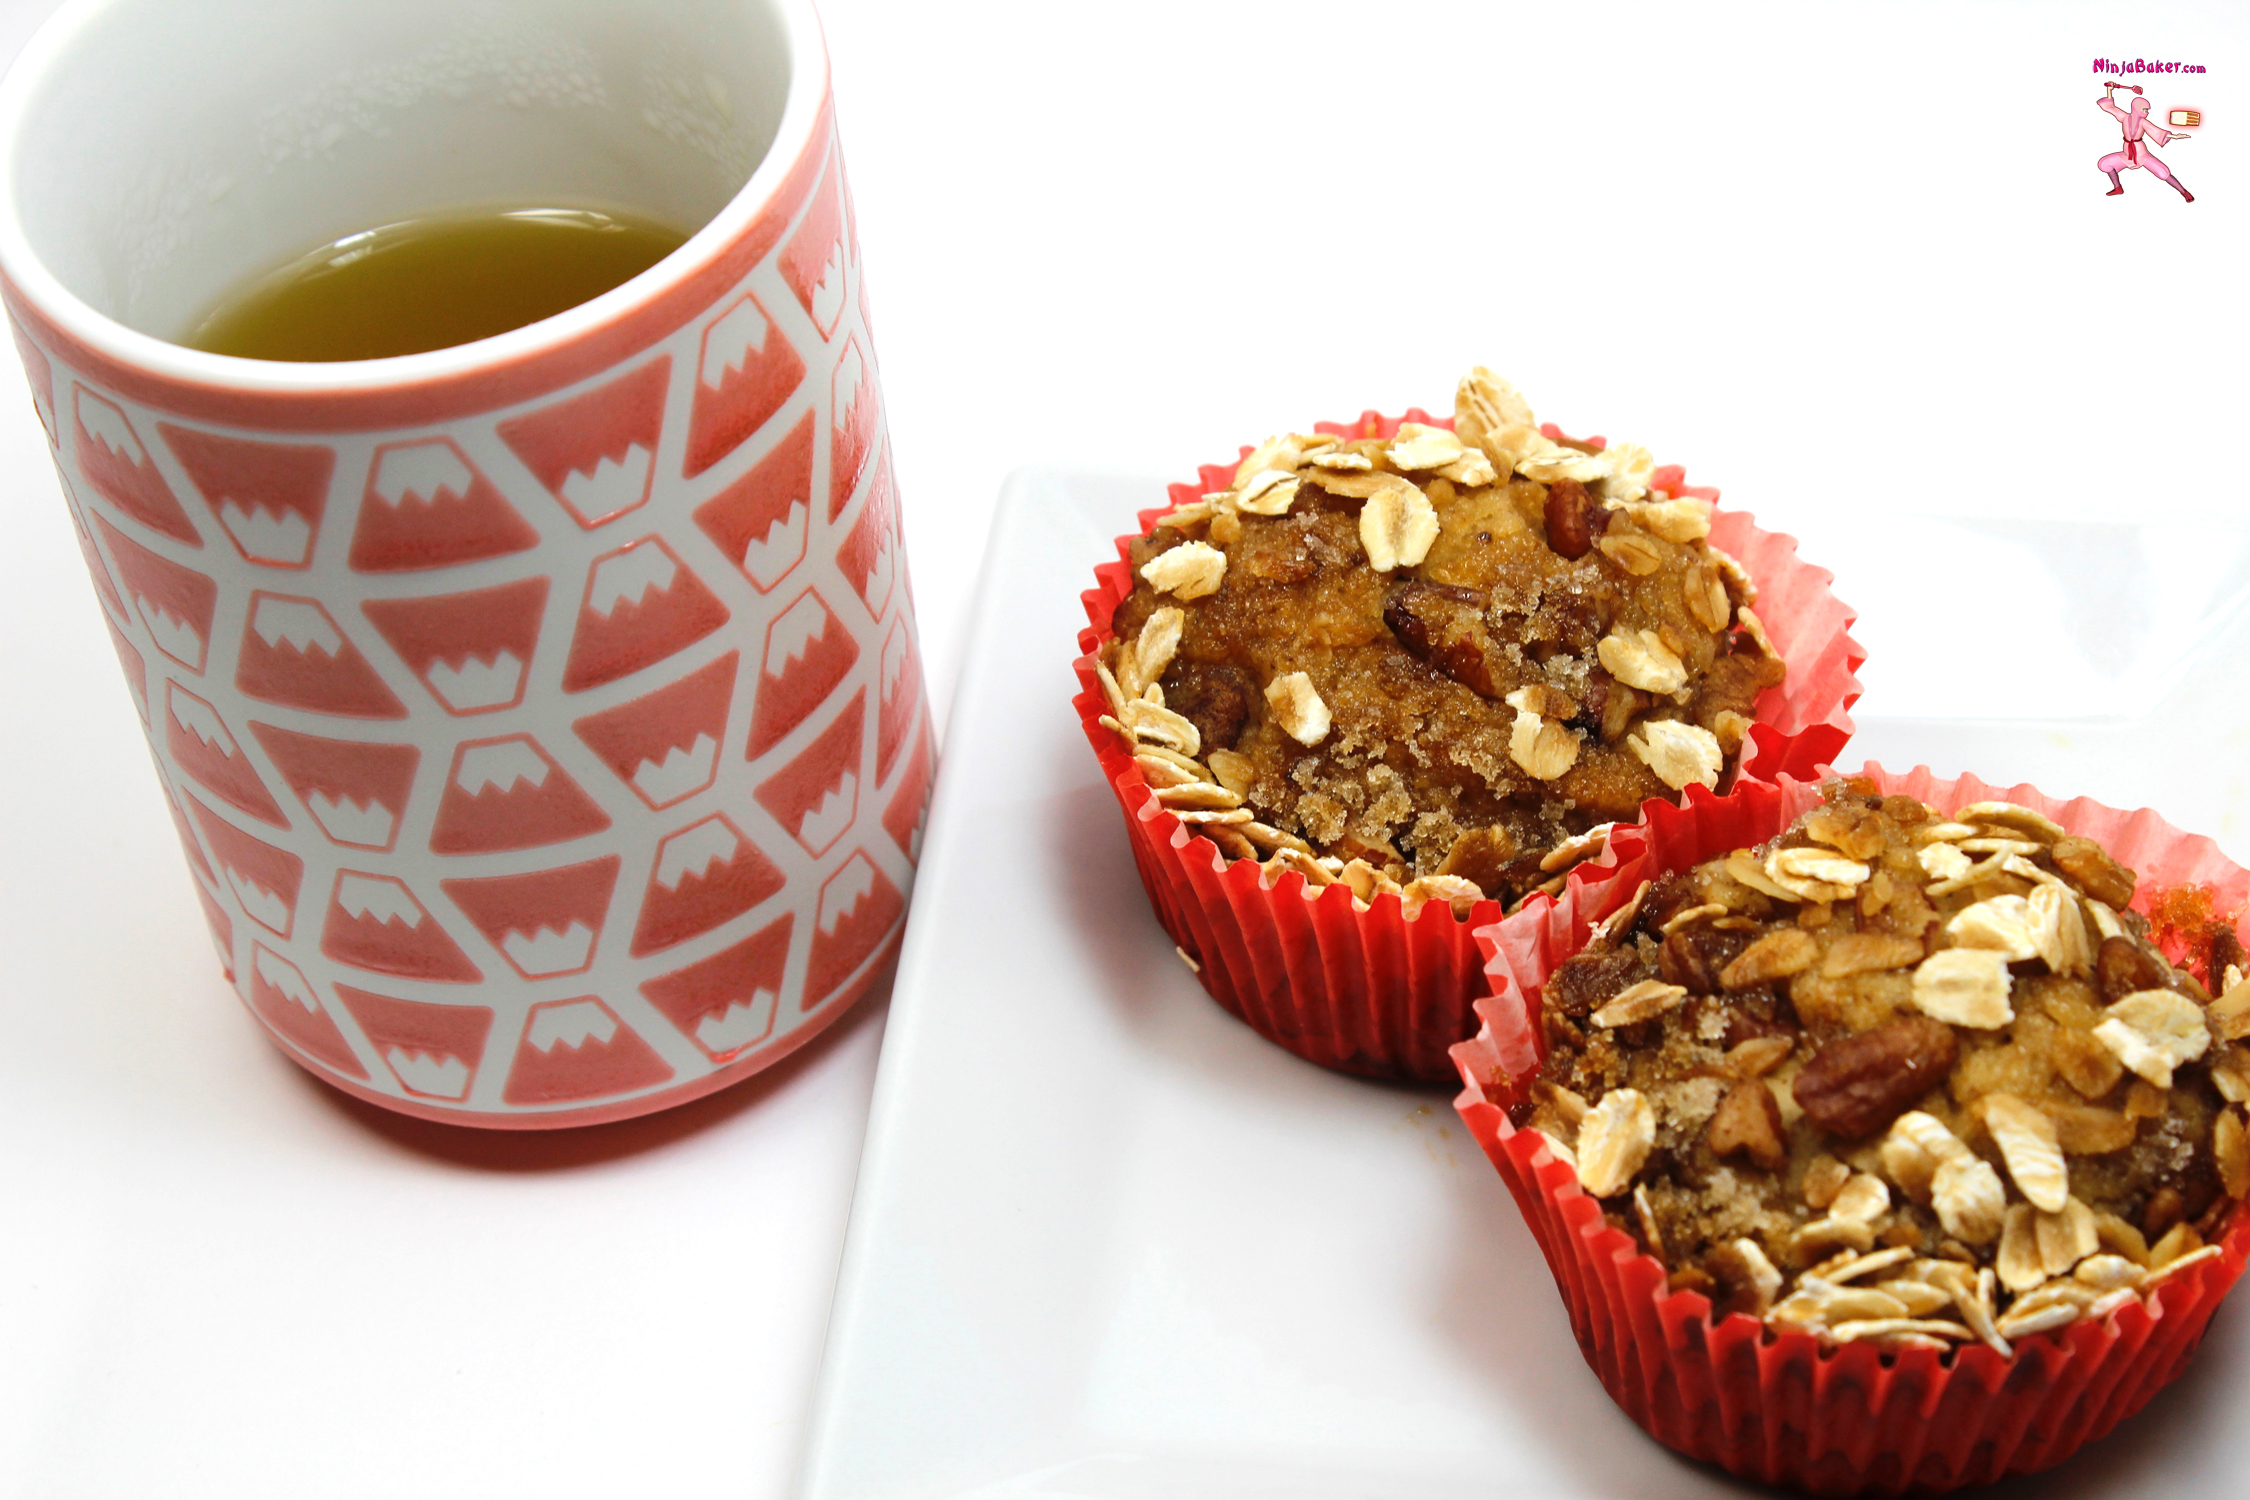 #glutenfree #Glutino #healthy #recipe #muffin #easy #banana